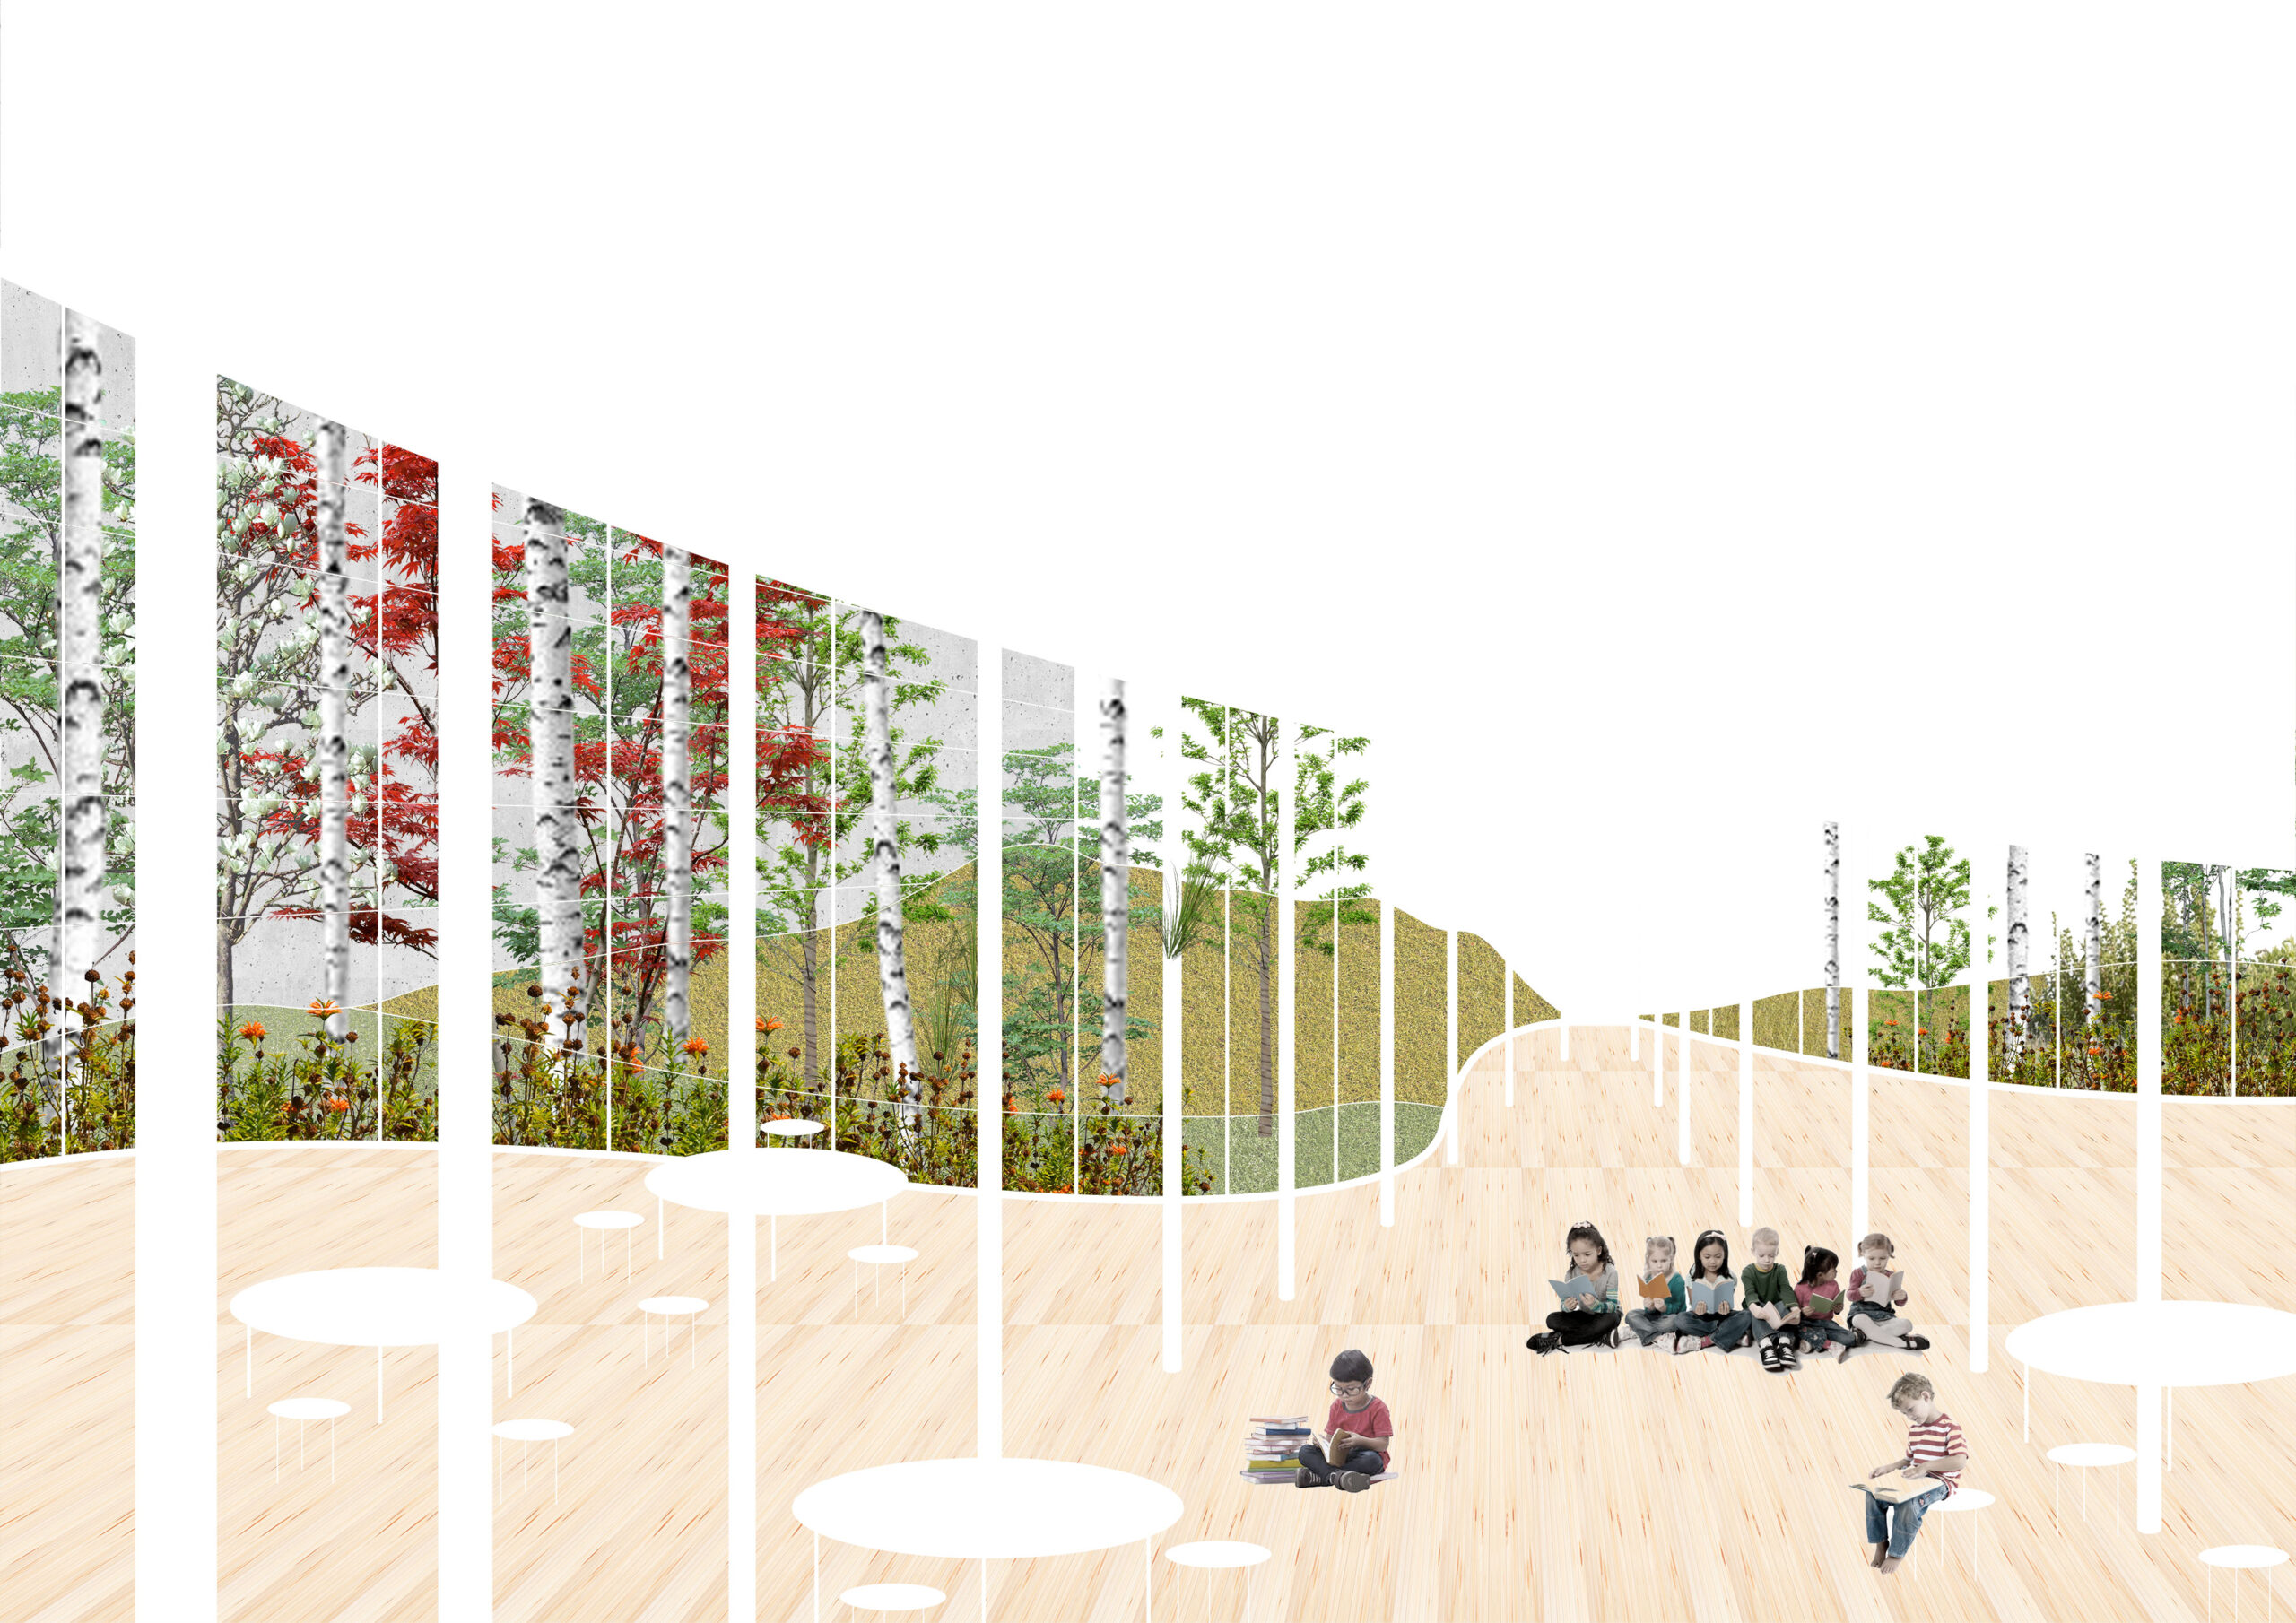 Reimagined journey through the forest of beams upon the school entry [ DOES THIS MEAN 'AT SCHOOL ENTRANCE'?